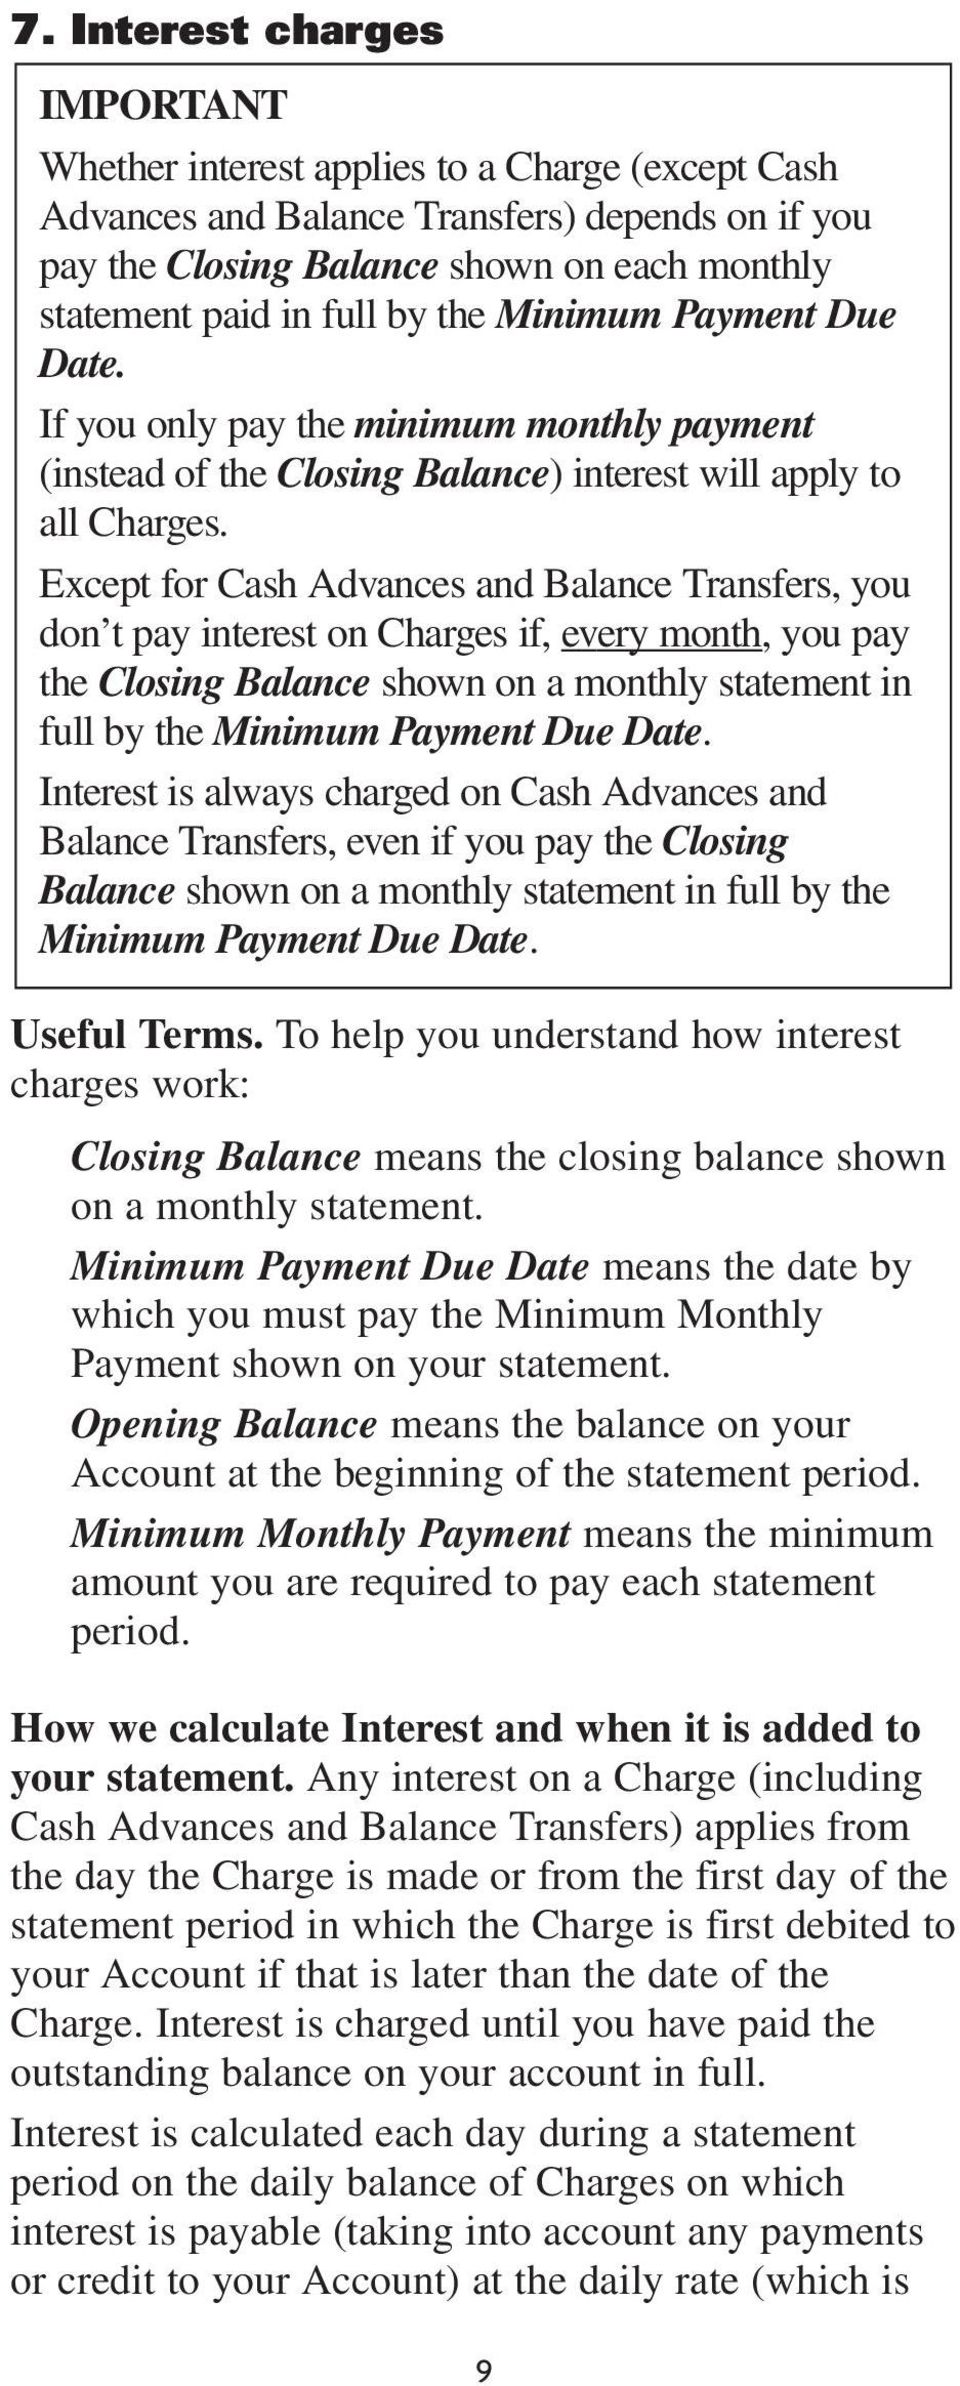 Except for Cash Advances and Balance Transfers, you don t pay interest on Charges if, every month, you pay the Closing Balance shown on a monthly statement in full by the Minimum Payment Due Date.